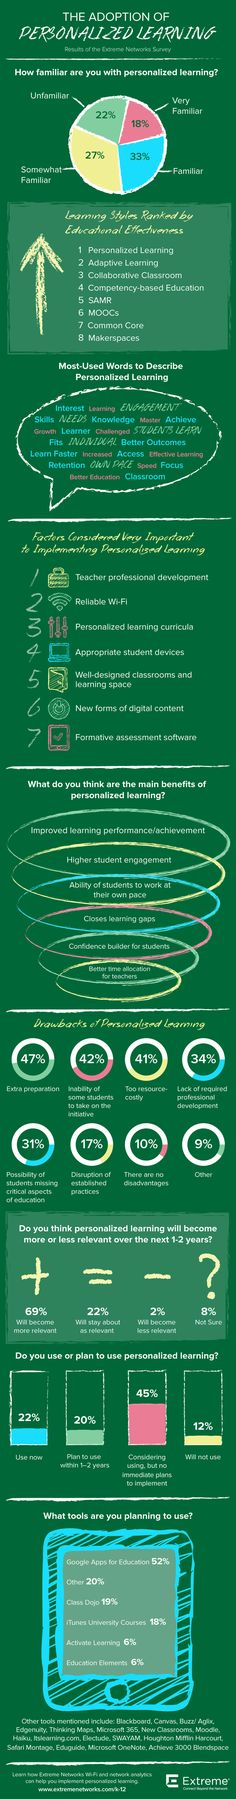 The attributes that makePersonalized Learning effective includehigher student engagement, the ability for students to work at their own pace,and the oppo